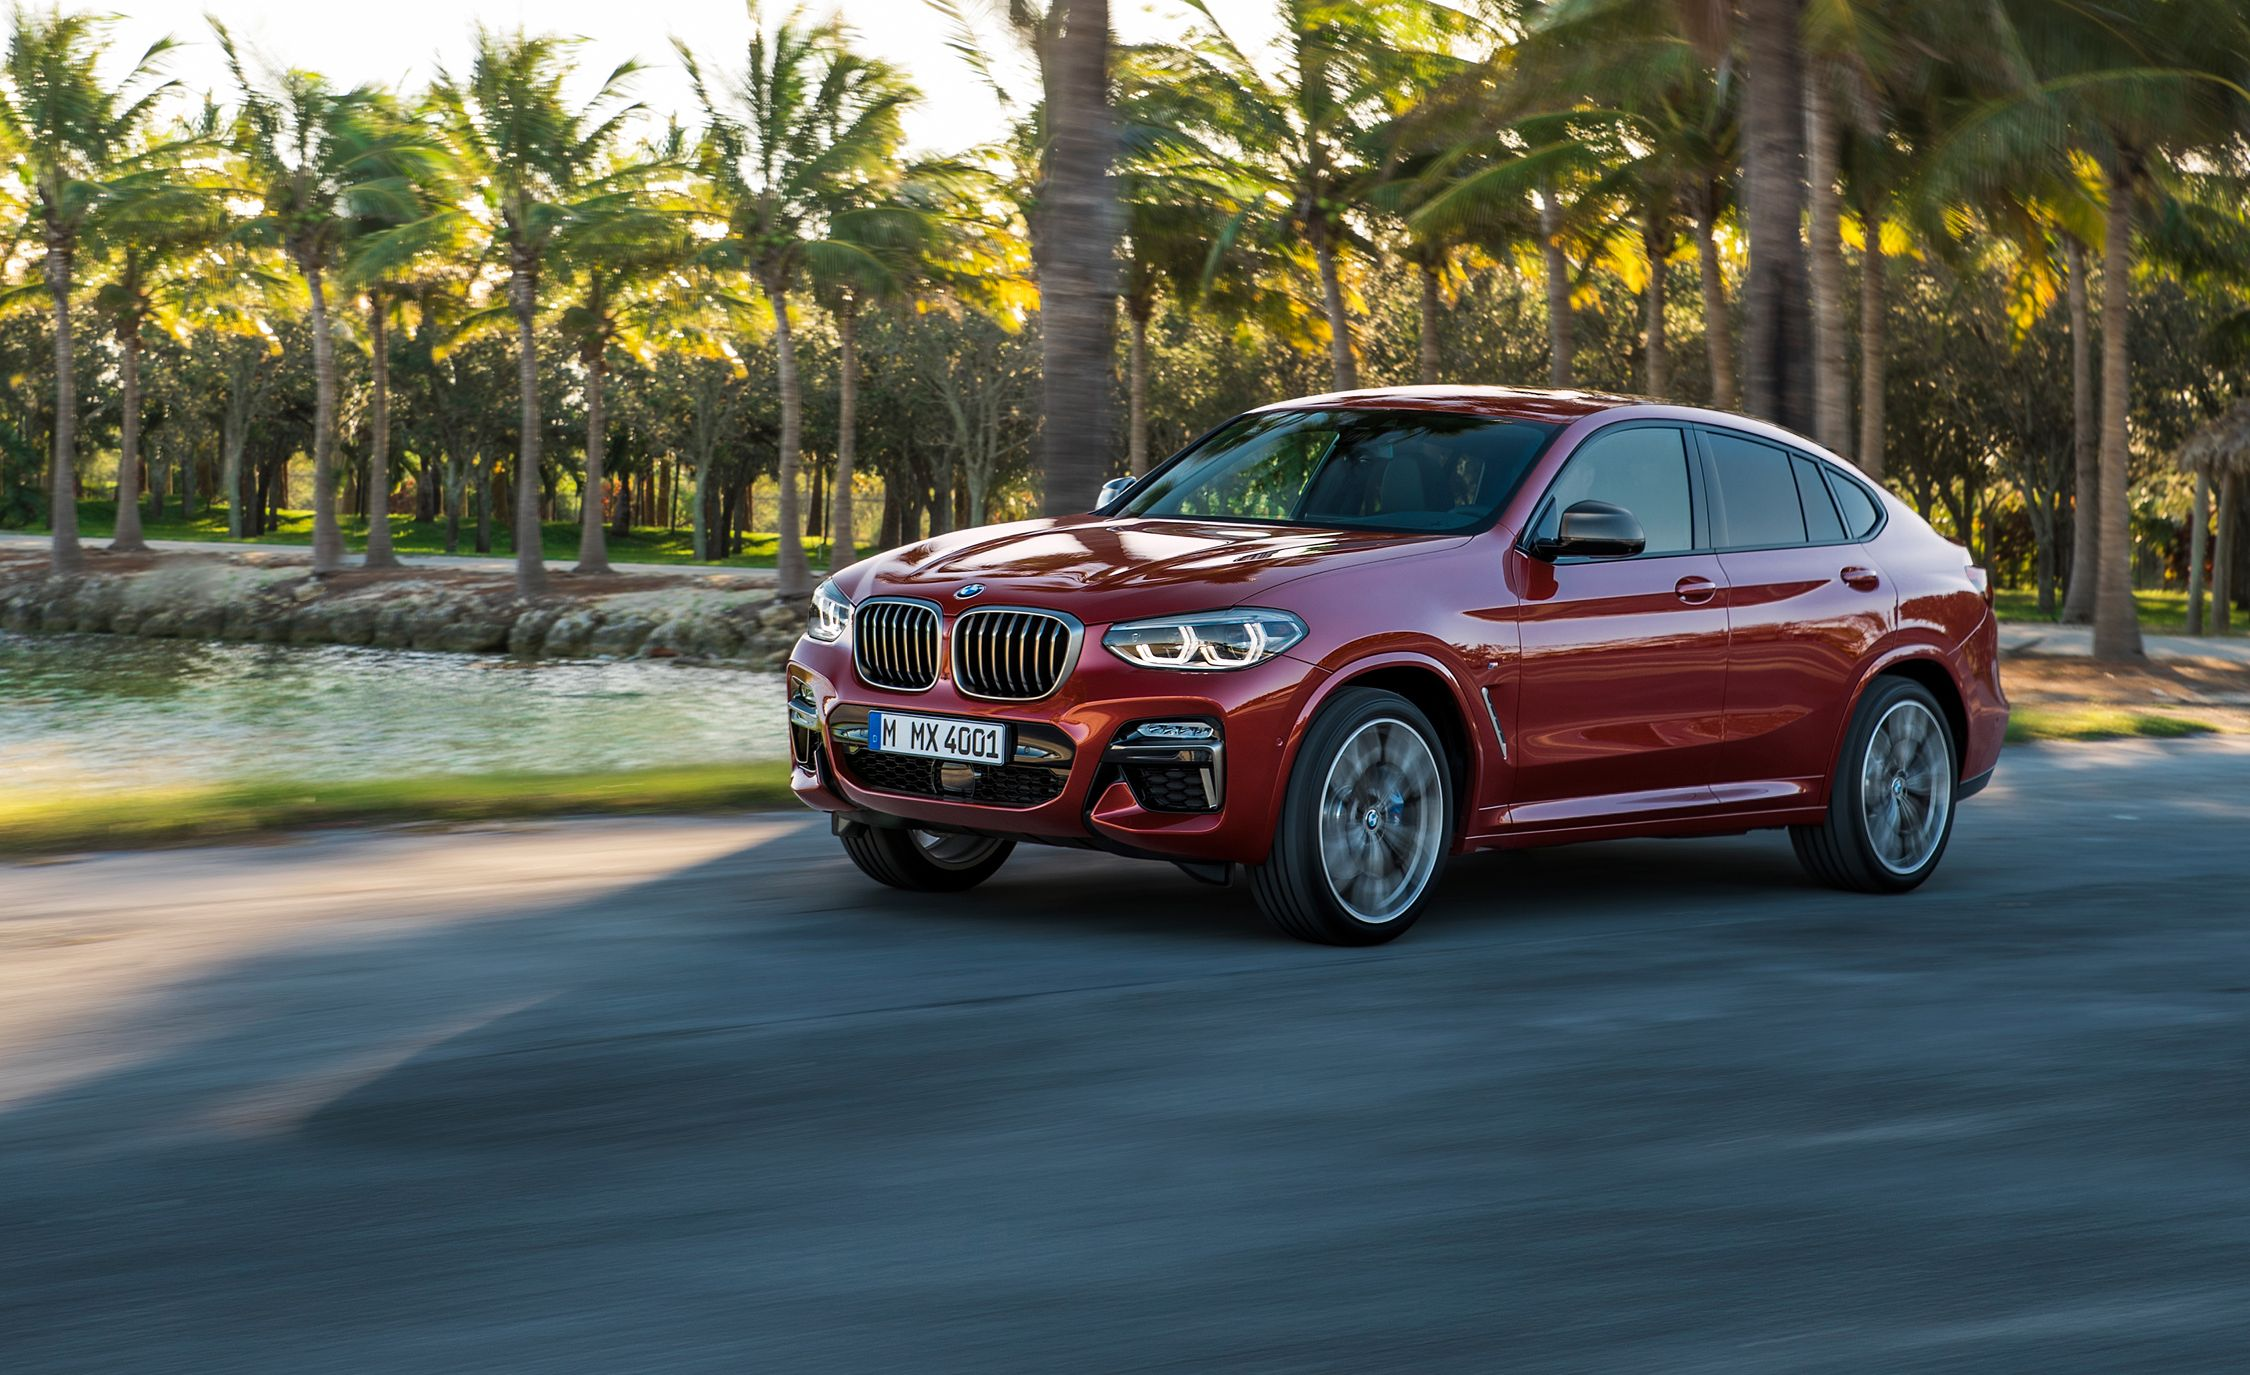 2019 BMW X4: The Fastback Compact SUV Returns